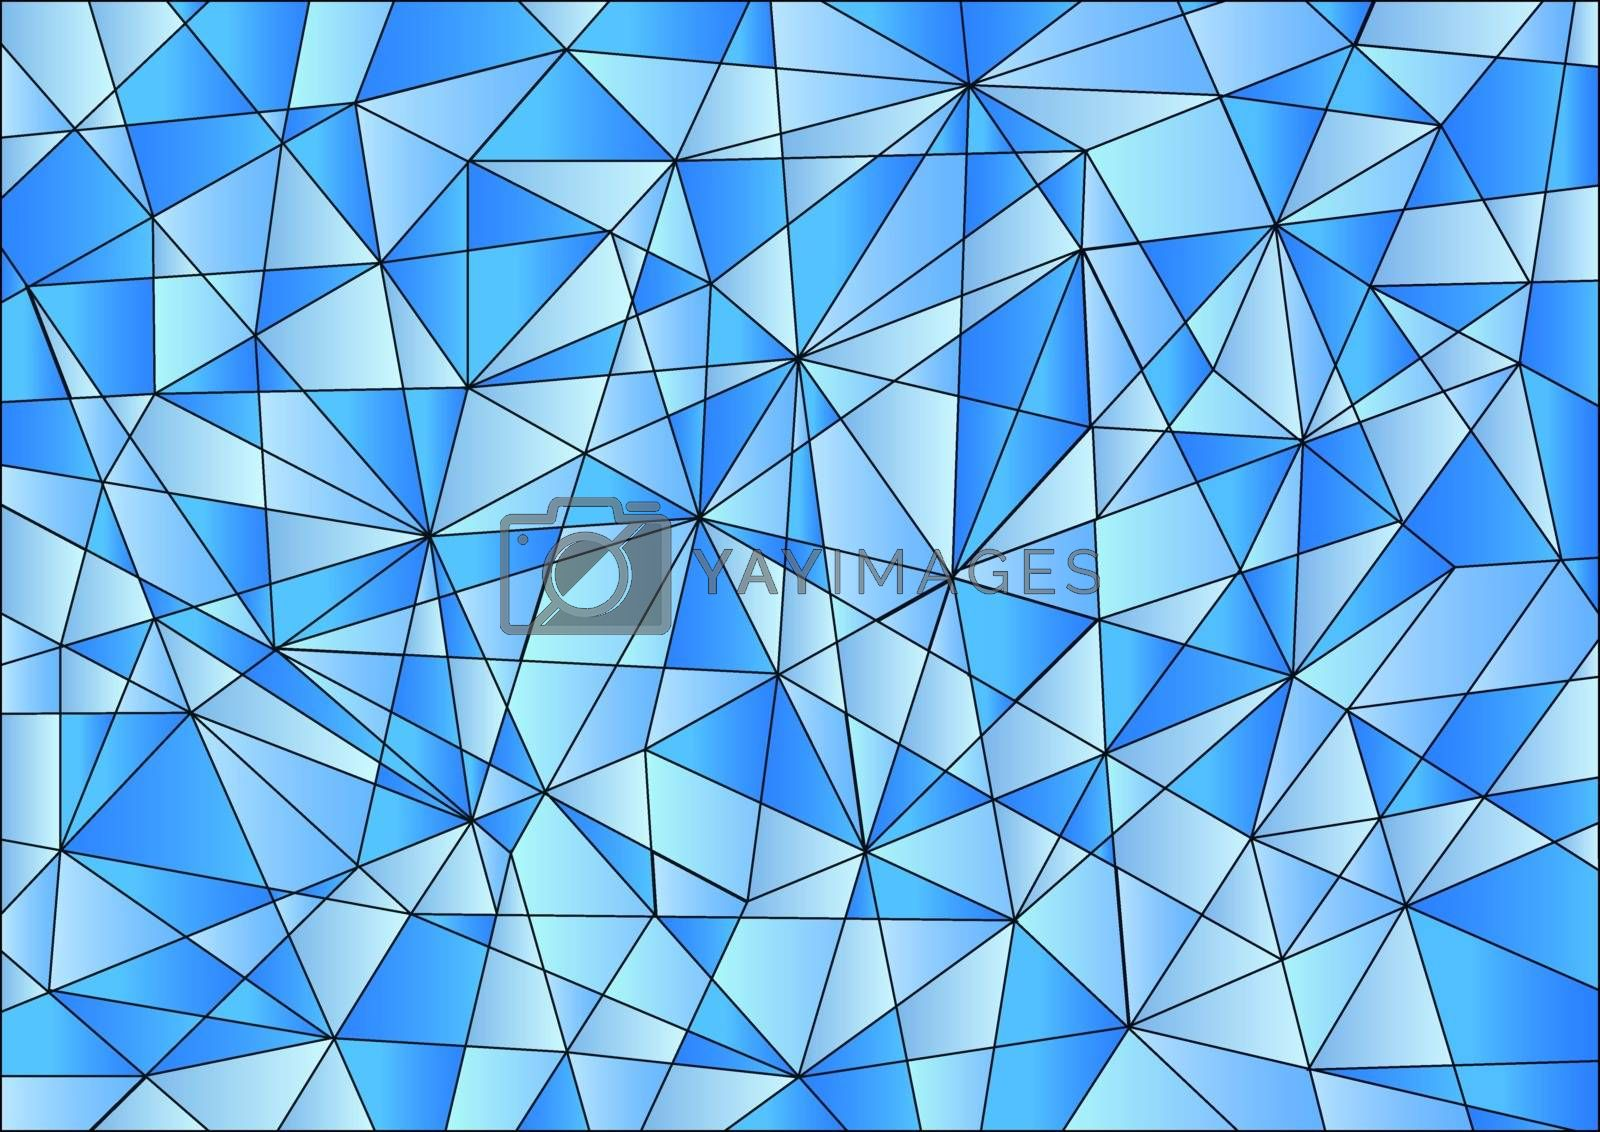 Abstract geometric pattern is composed of triangles of different sizes in blue gradients.